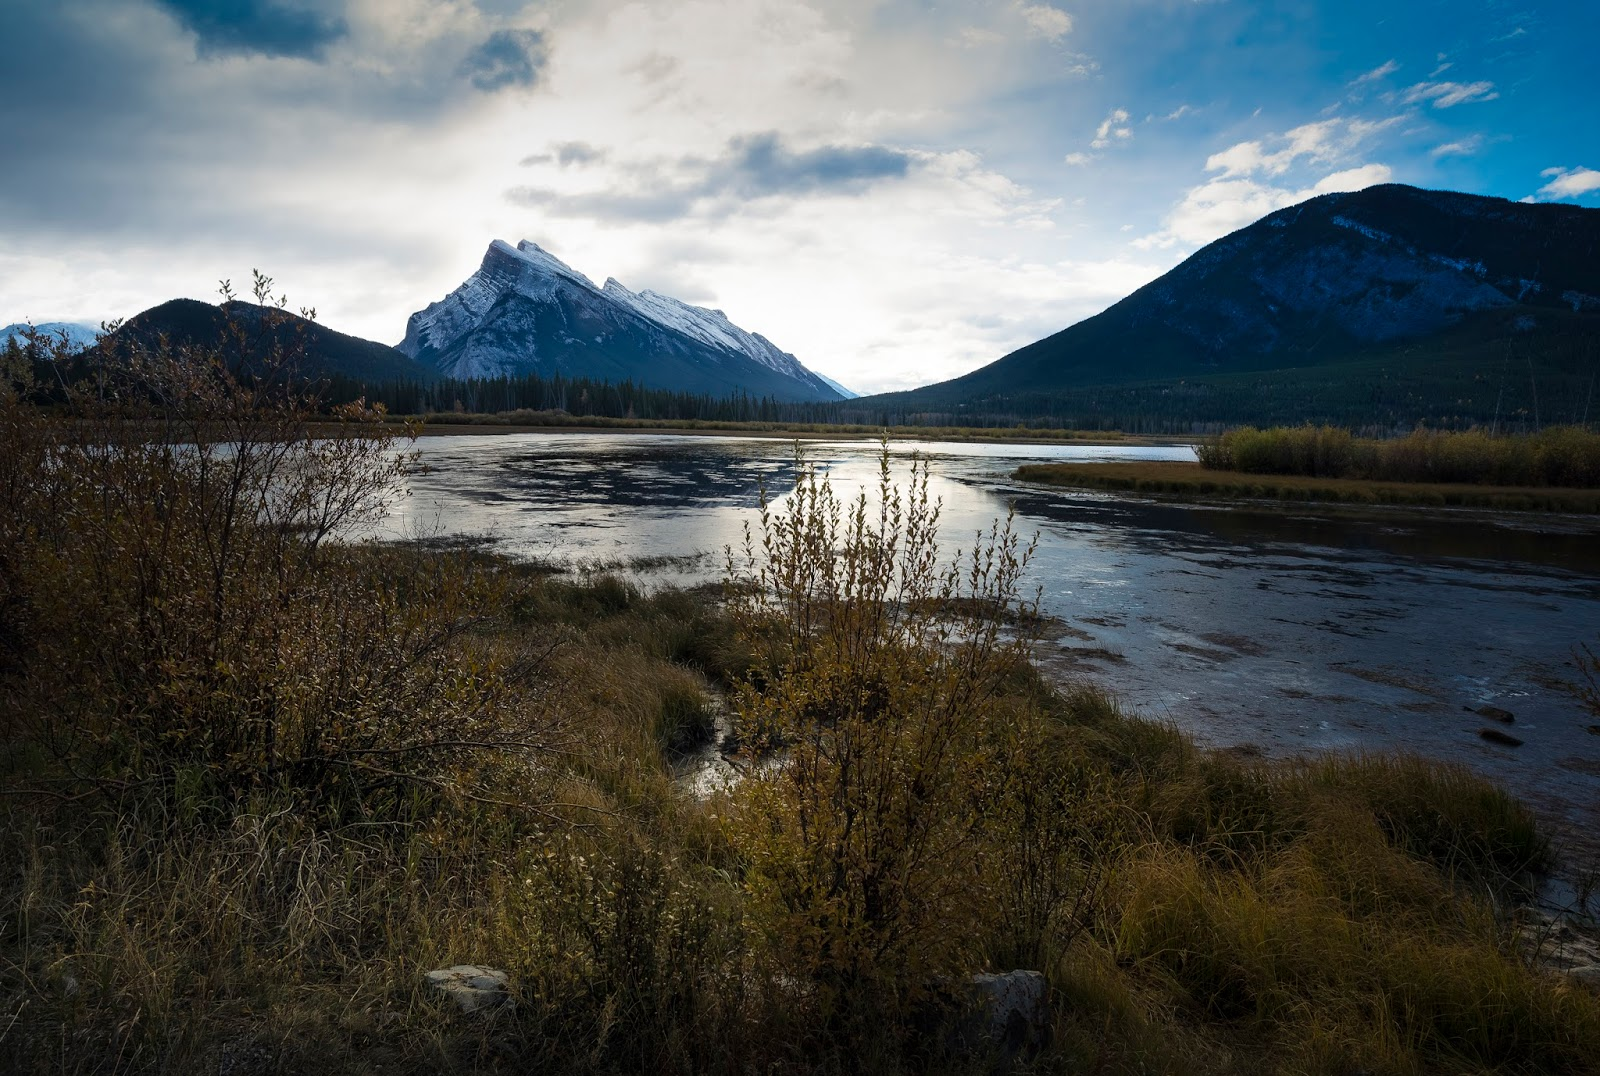 Mt. Rundle and Sulphur Mountain by Vermillion Lakes